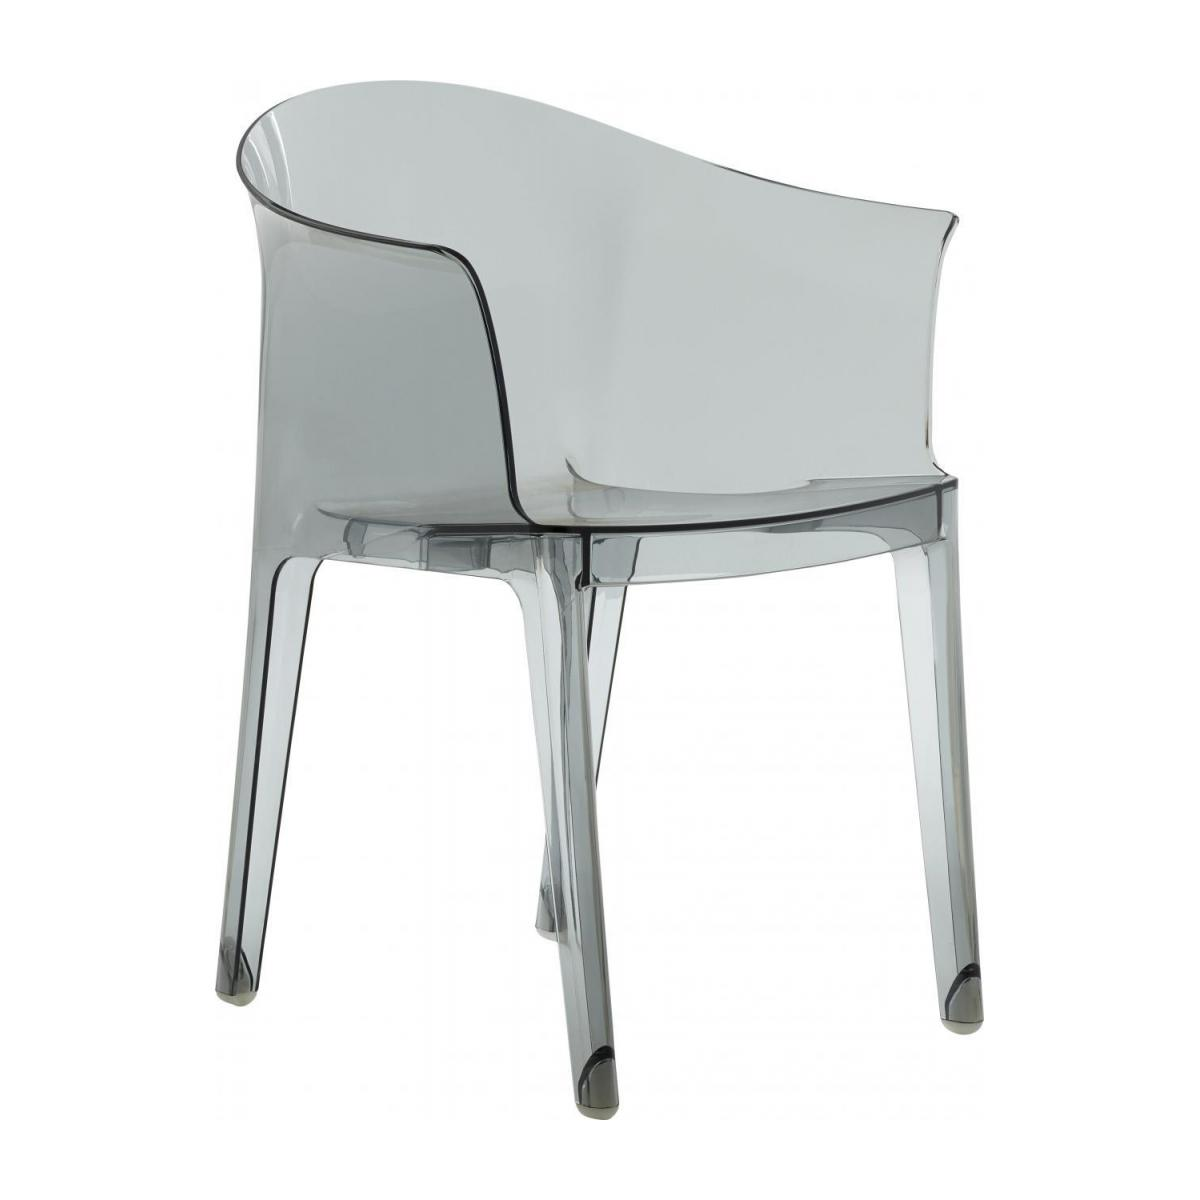 Smokey grey armchair in polycarbonate n°1